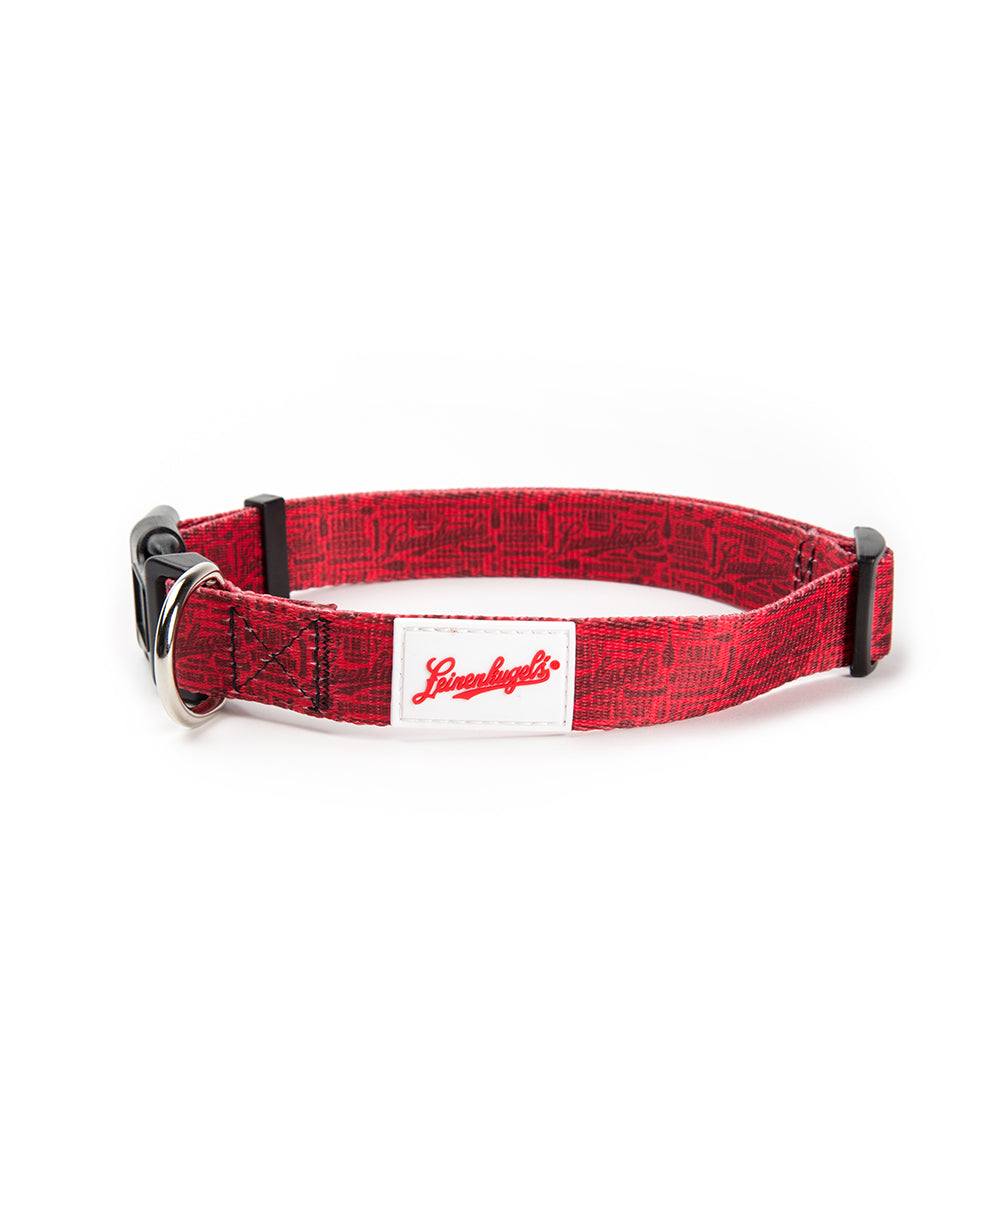 CANVAS PRINT PET COLLAR